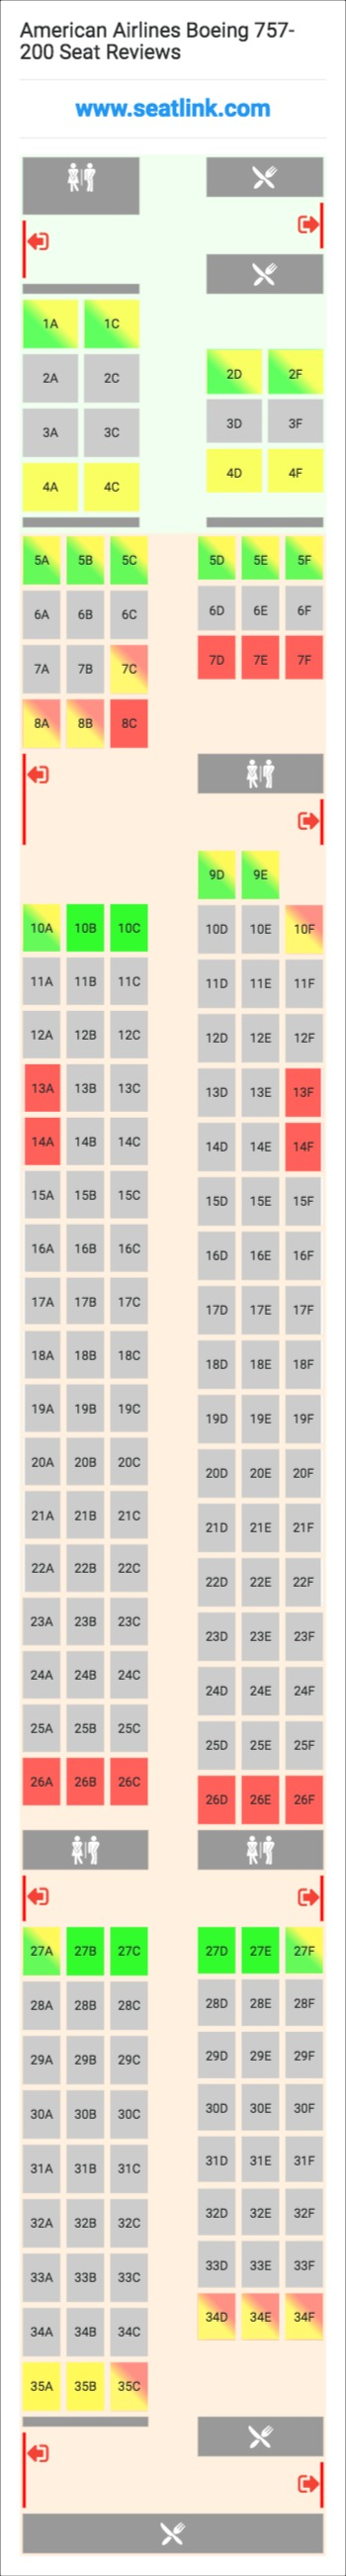 American Airlines Boeing 757 200 Seating Chart Updated